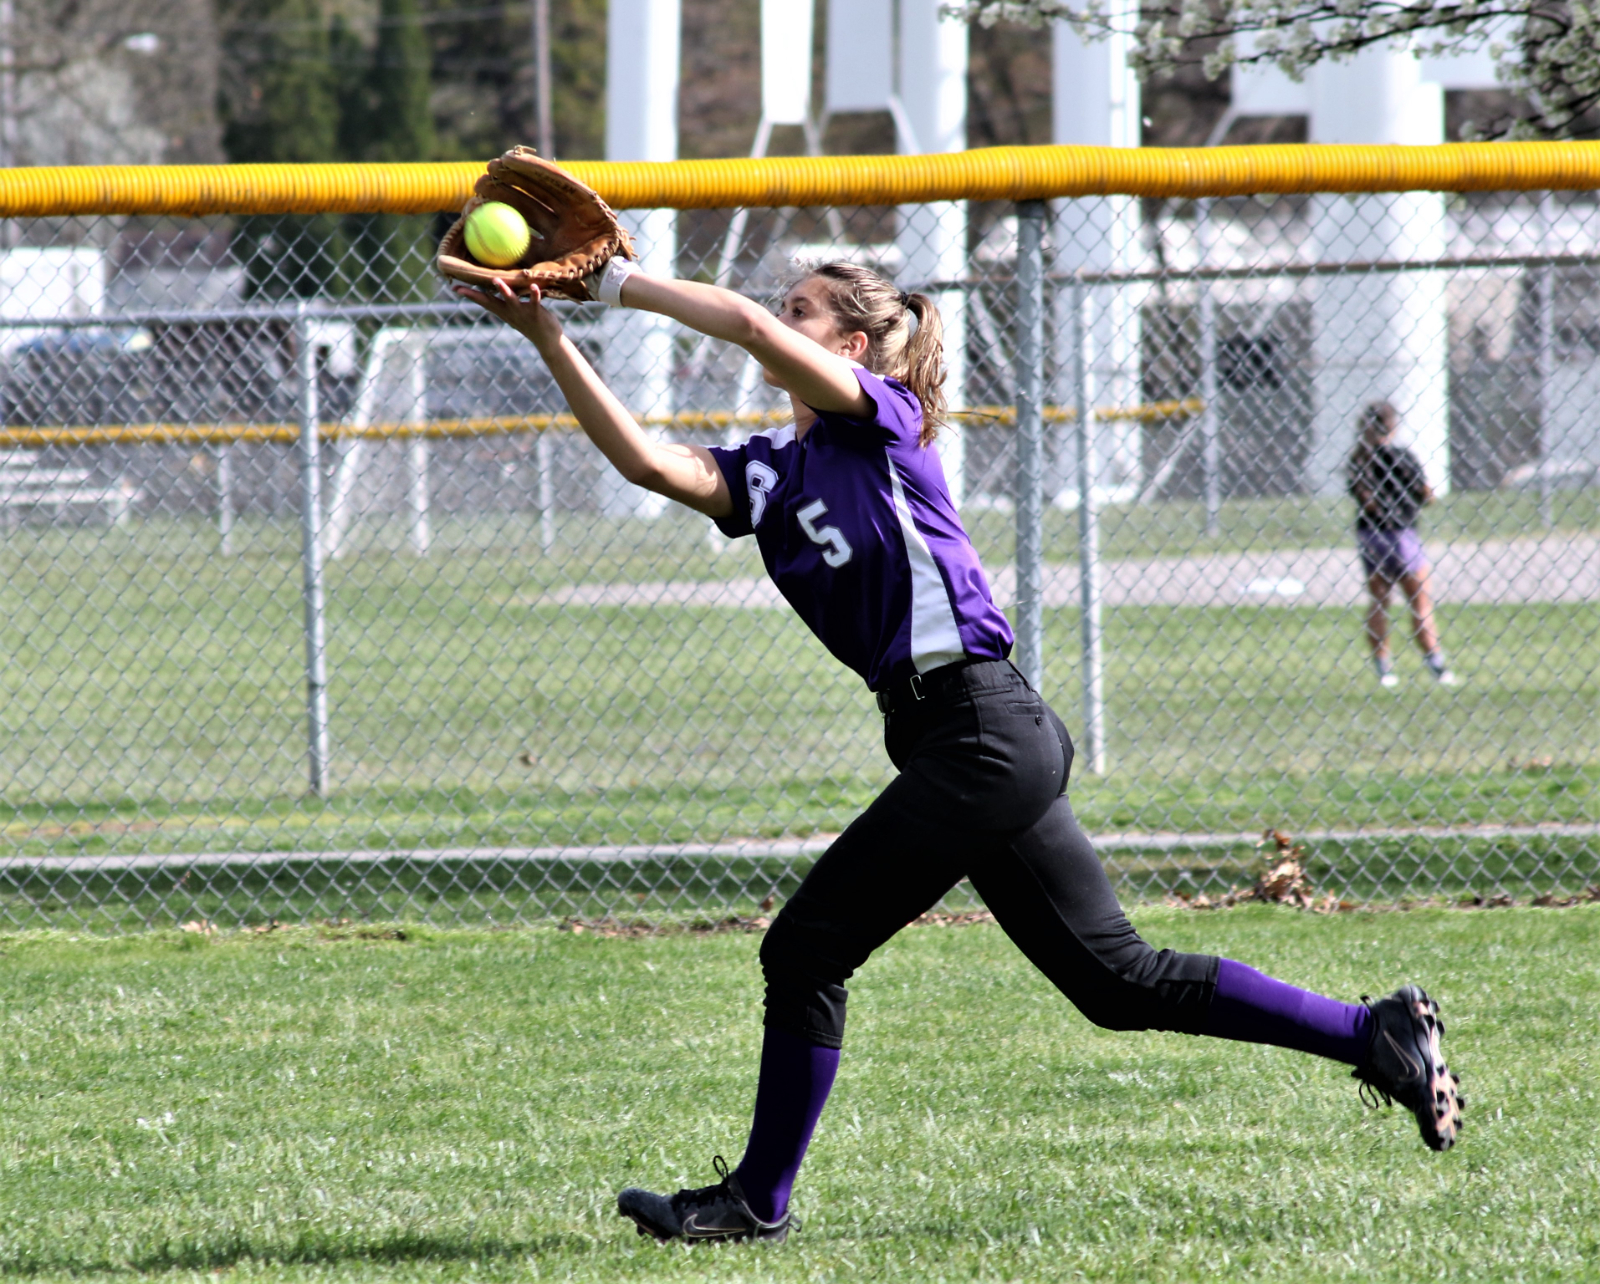 Rheannah Kesler's glove and bat helped lead the Lady Bulldogs Junior Varsity softball team to a 16-1 home victory over the Toledo Waite Lady Indians.